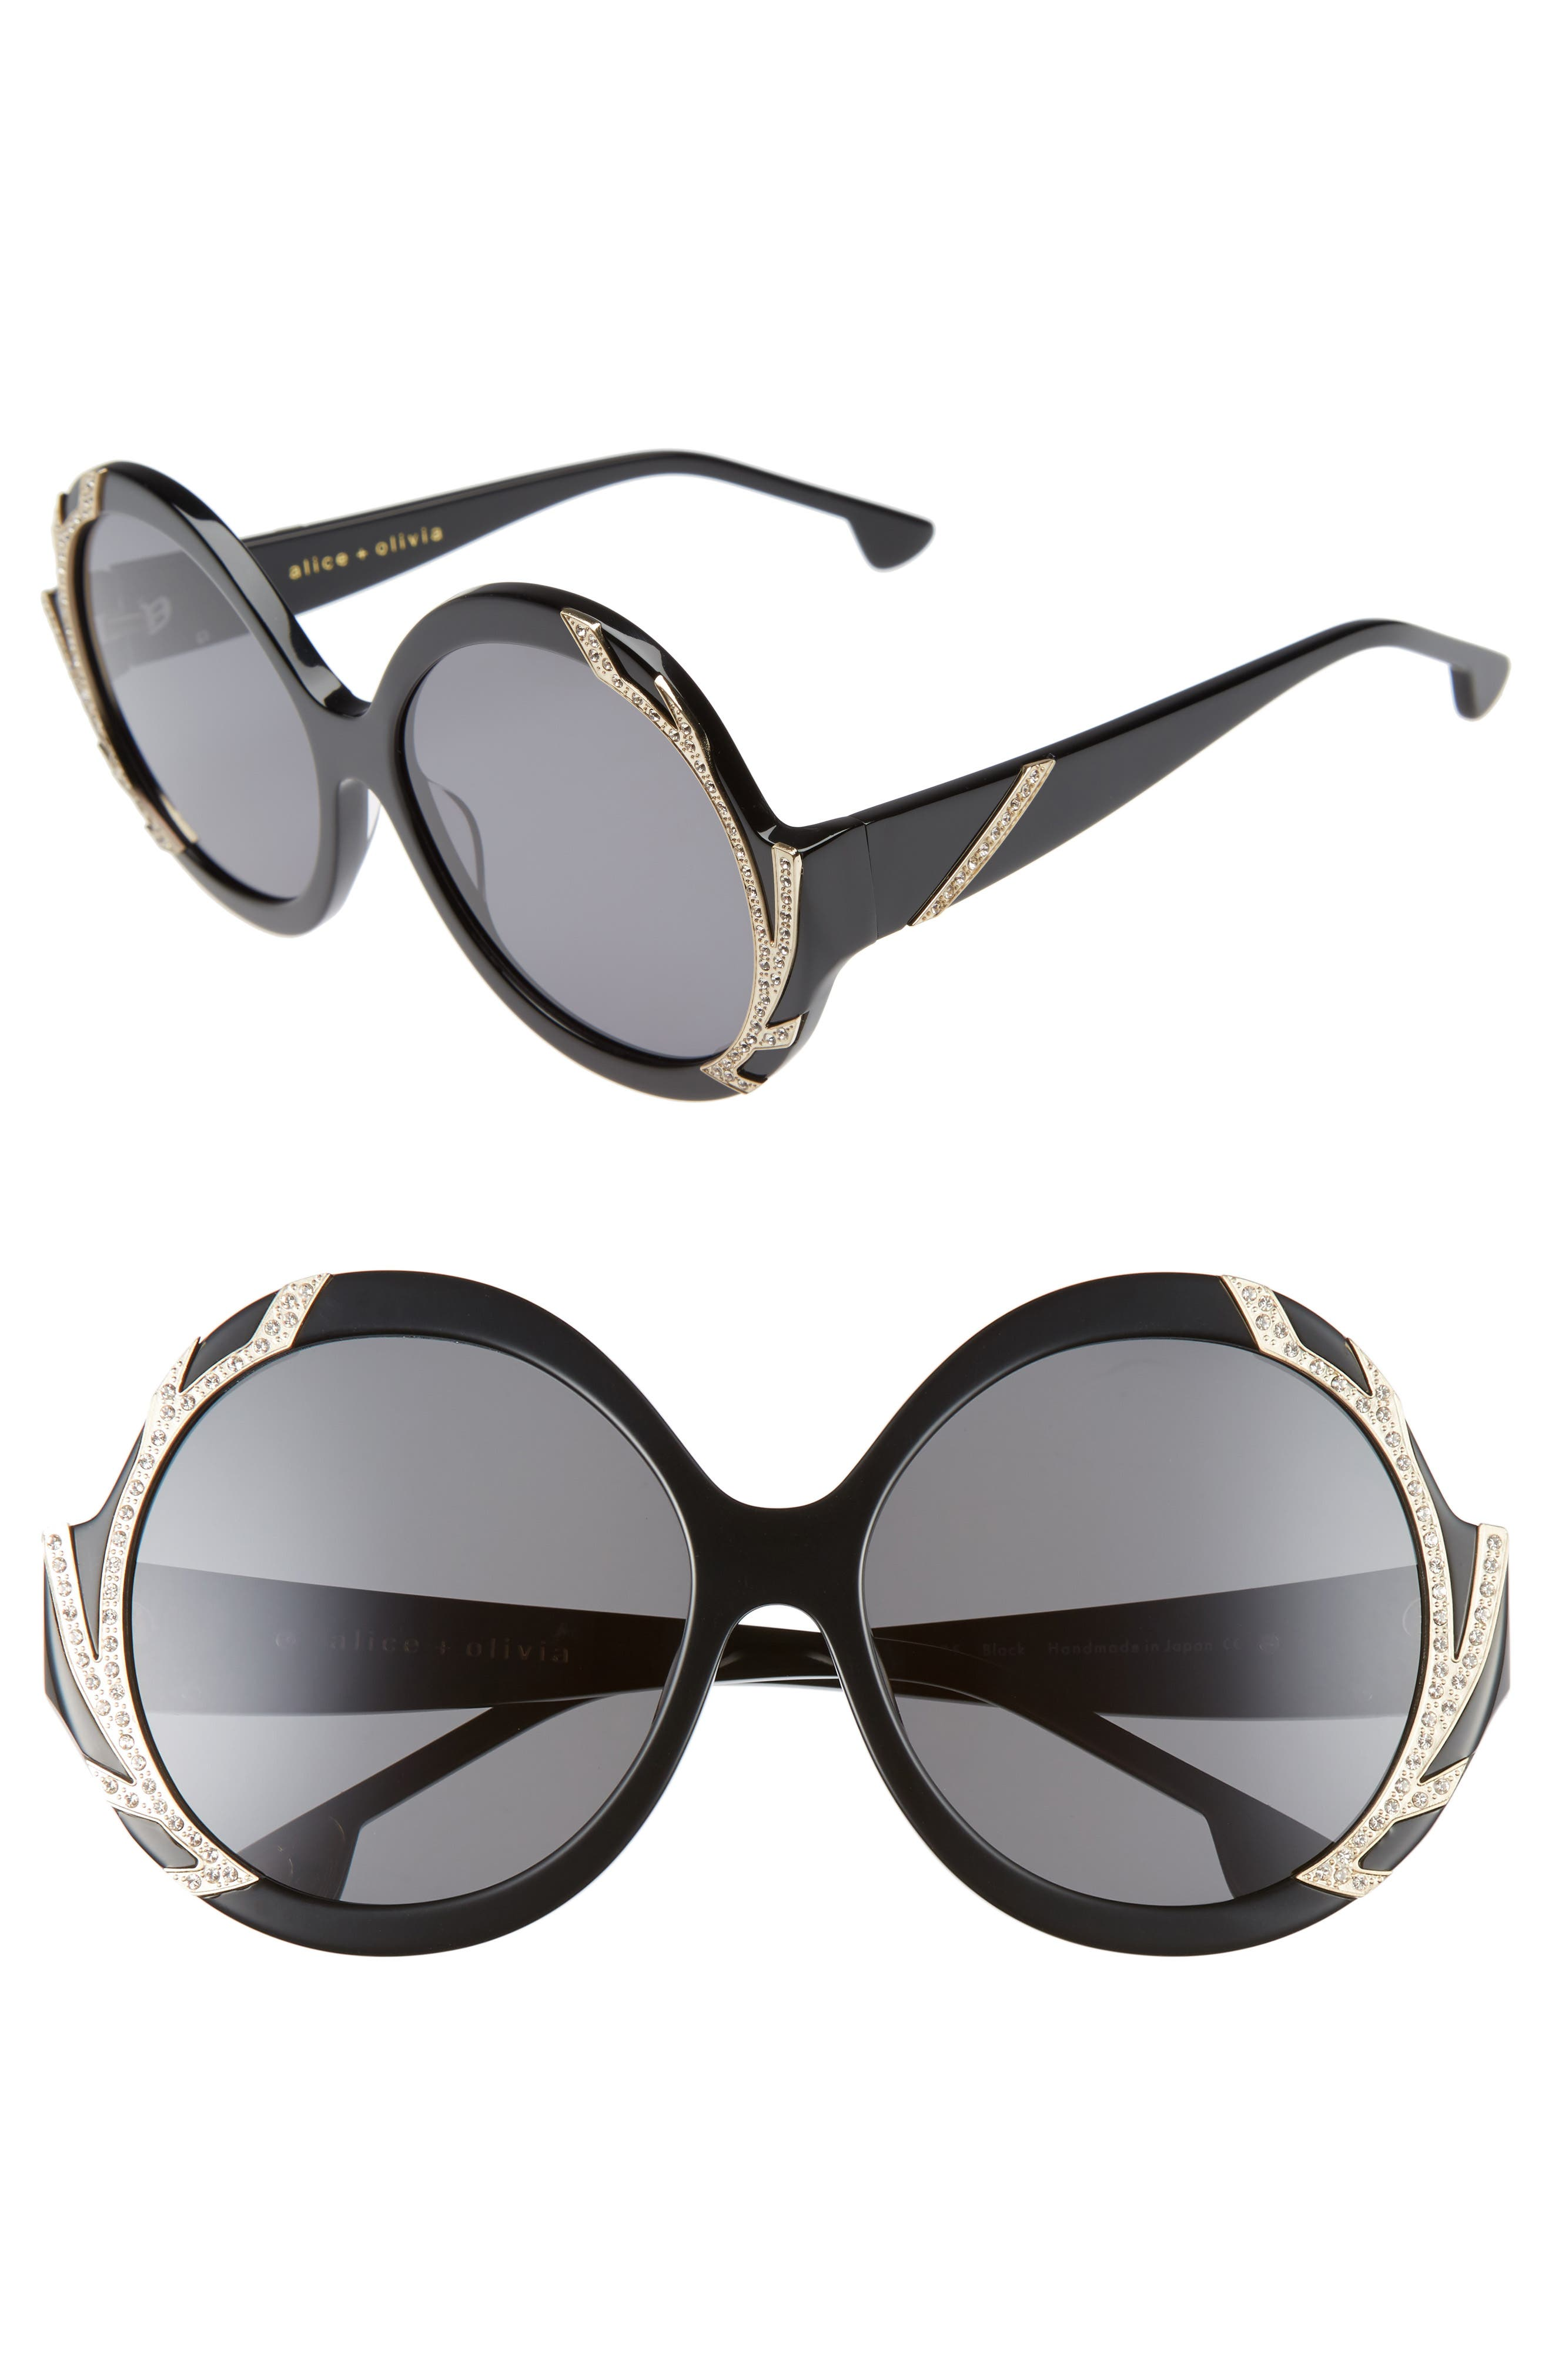 Stacey Crystal 59mm Gradient Lens Round Sunglasses,                         Main,                         color, 001